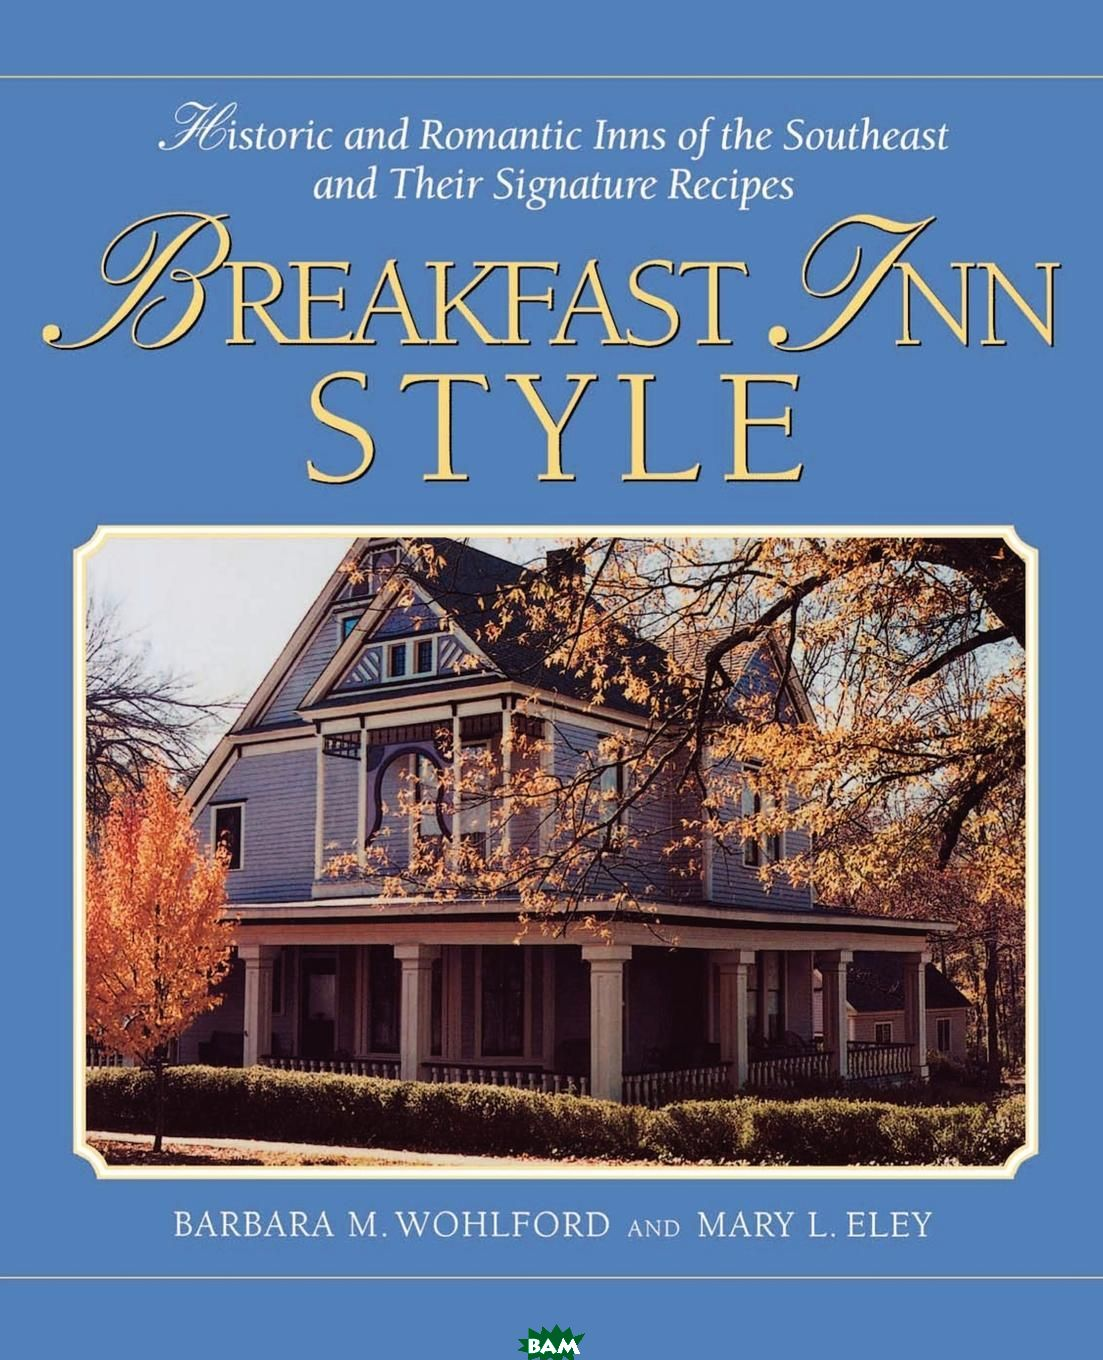 Купить Breakfast Inn Style. Historic and Romantic Inns of the Southeast and Their Signature Recipes, Barbara M. Wohlford, Mary L. Eley, 9781558539068